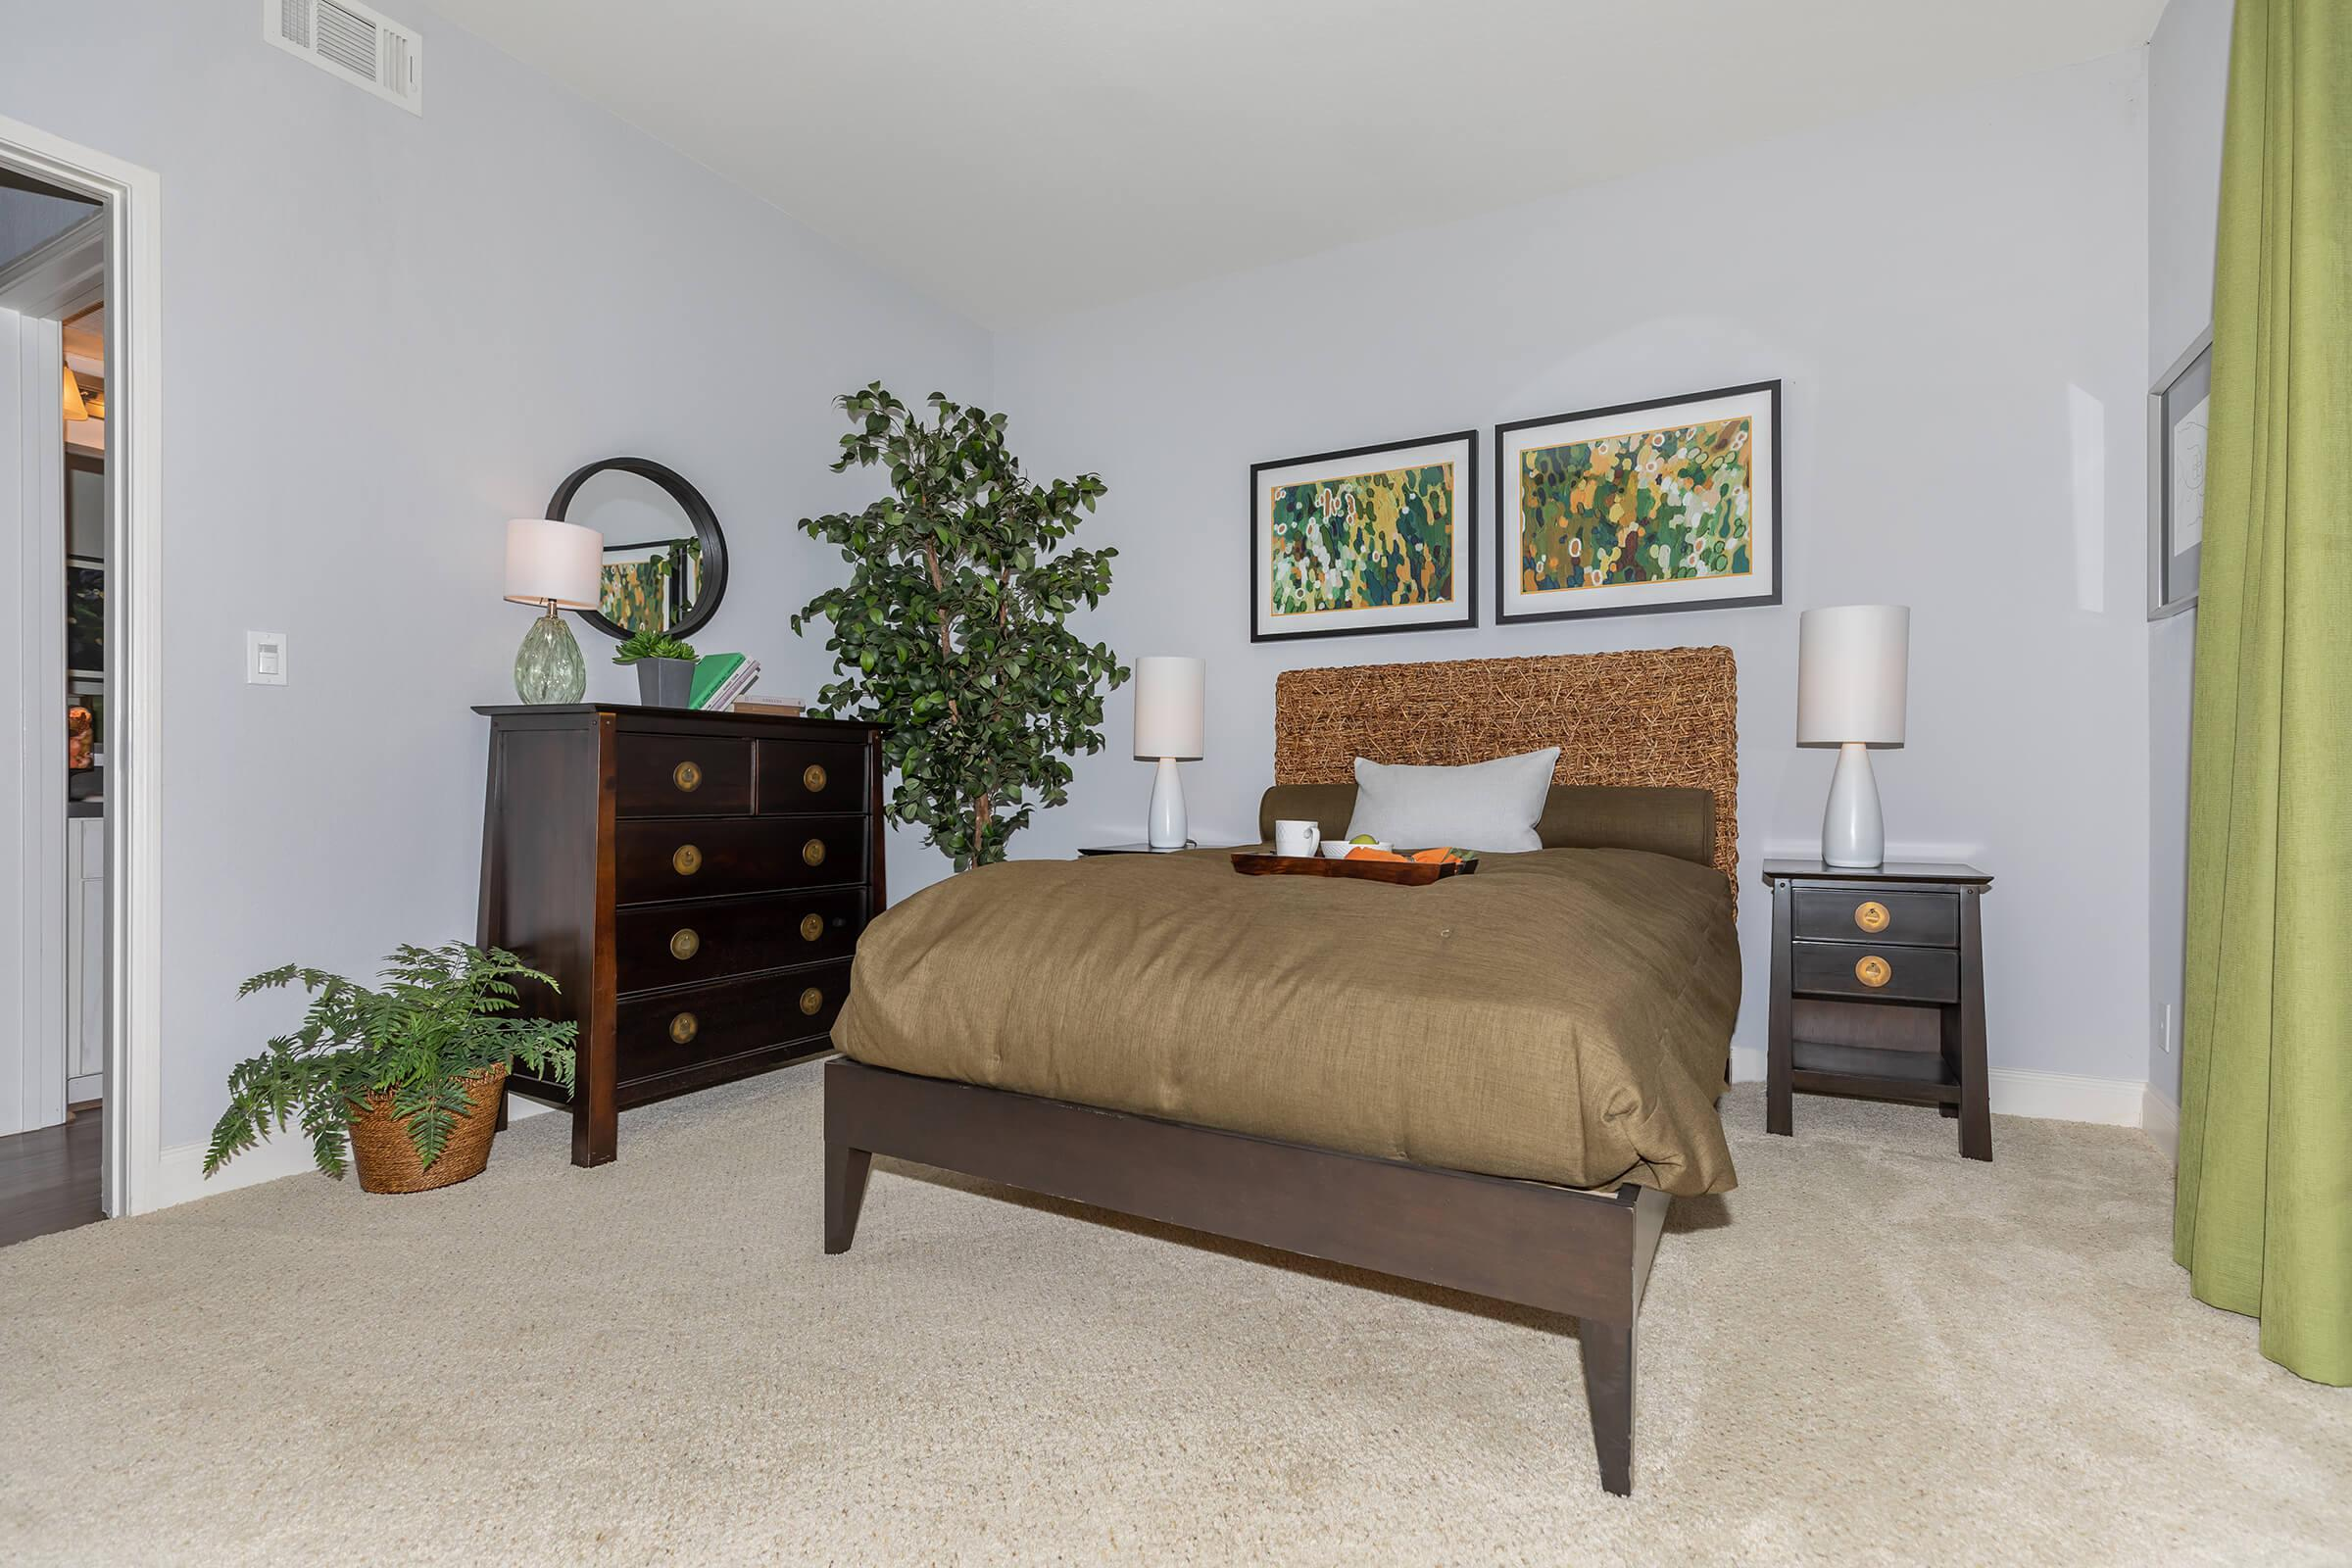 a bedroom with a bed and a couch in a living room